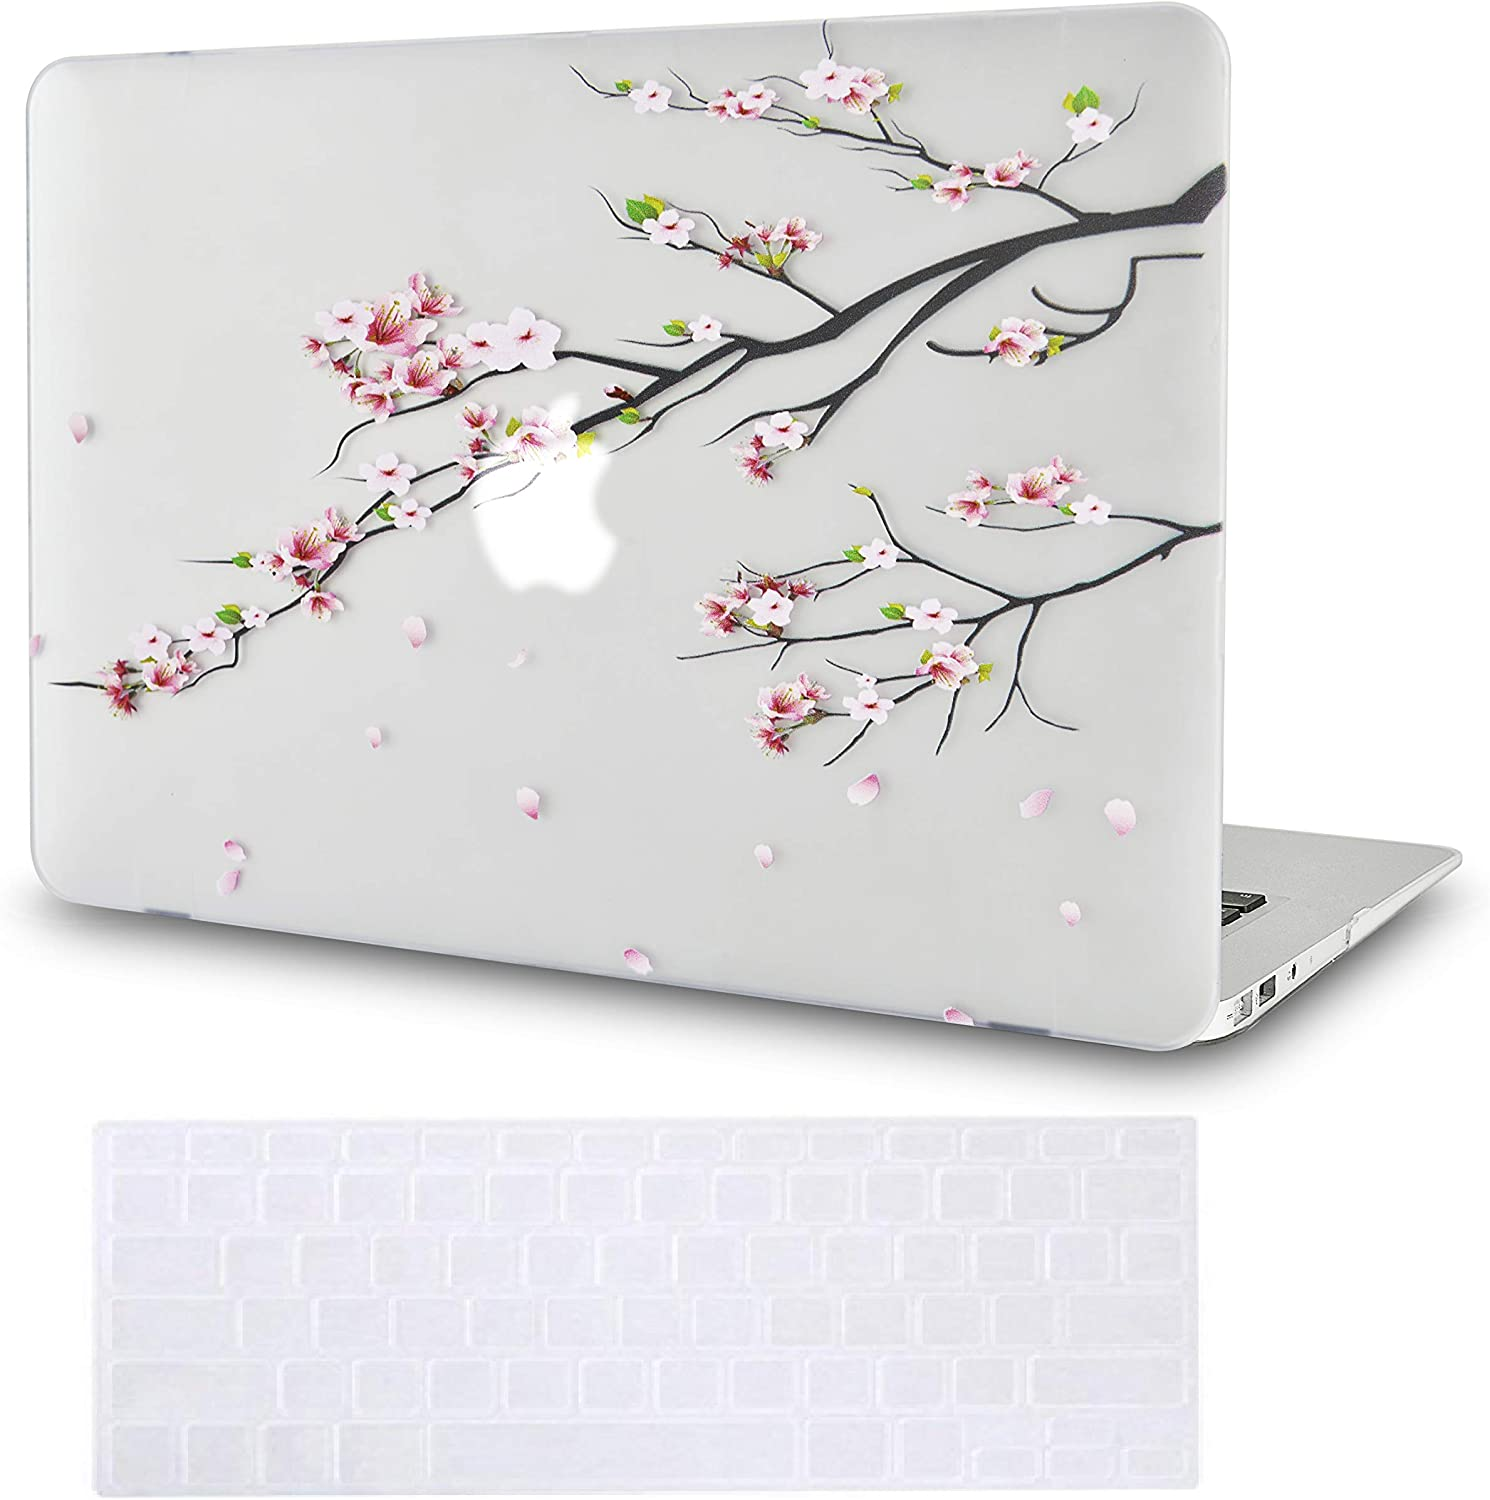 LuvCase 2 in 1 Laptop Case for MacBook Air 13 Inch (2020)(Touch ID) A2179 Retina Display Rubberized Plastic Hard Shell Cover & Keyboard Cover (Sakura Fall)